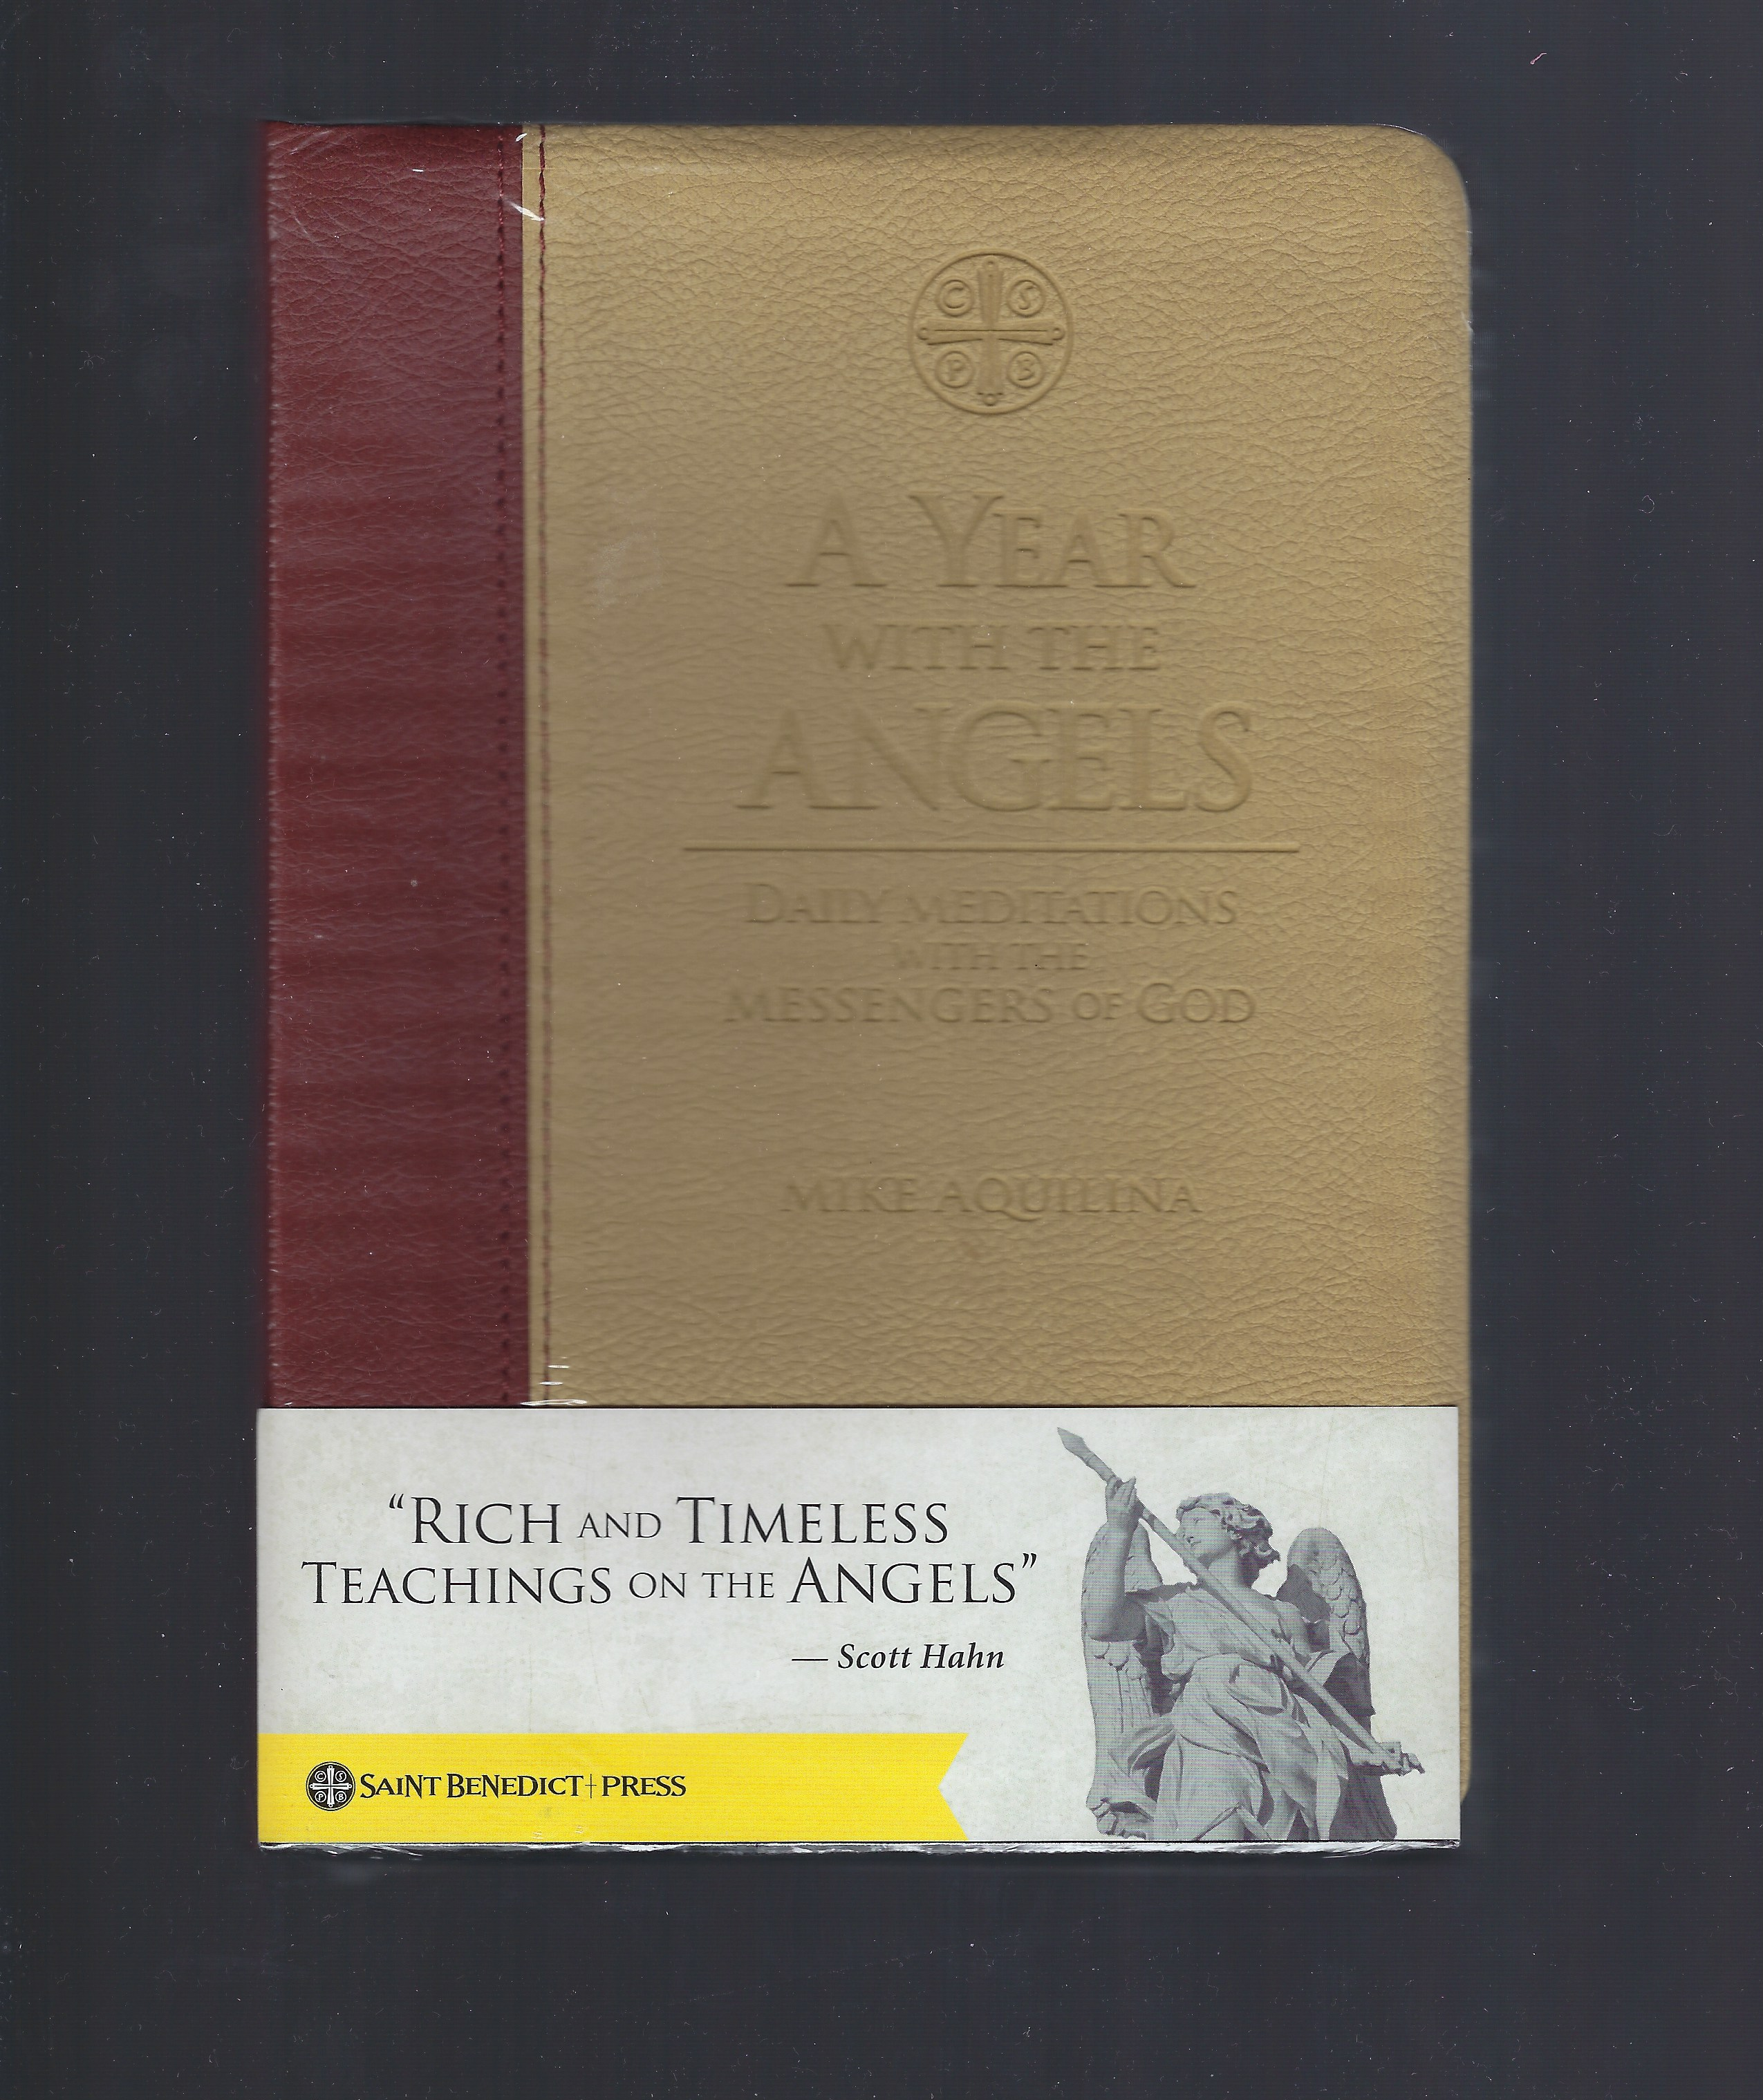 A Year With The Angels Daily Meditations with the Messengers of God, Mike Aquilina